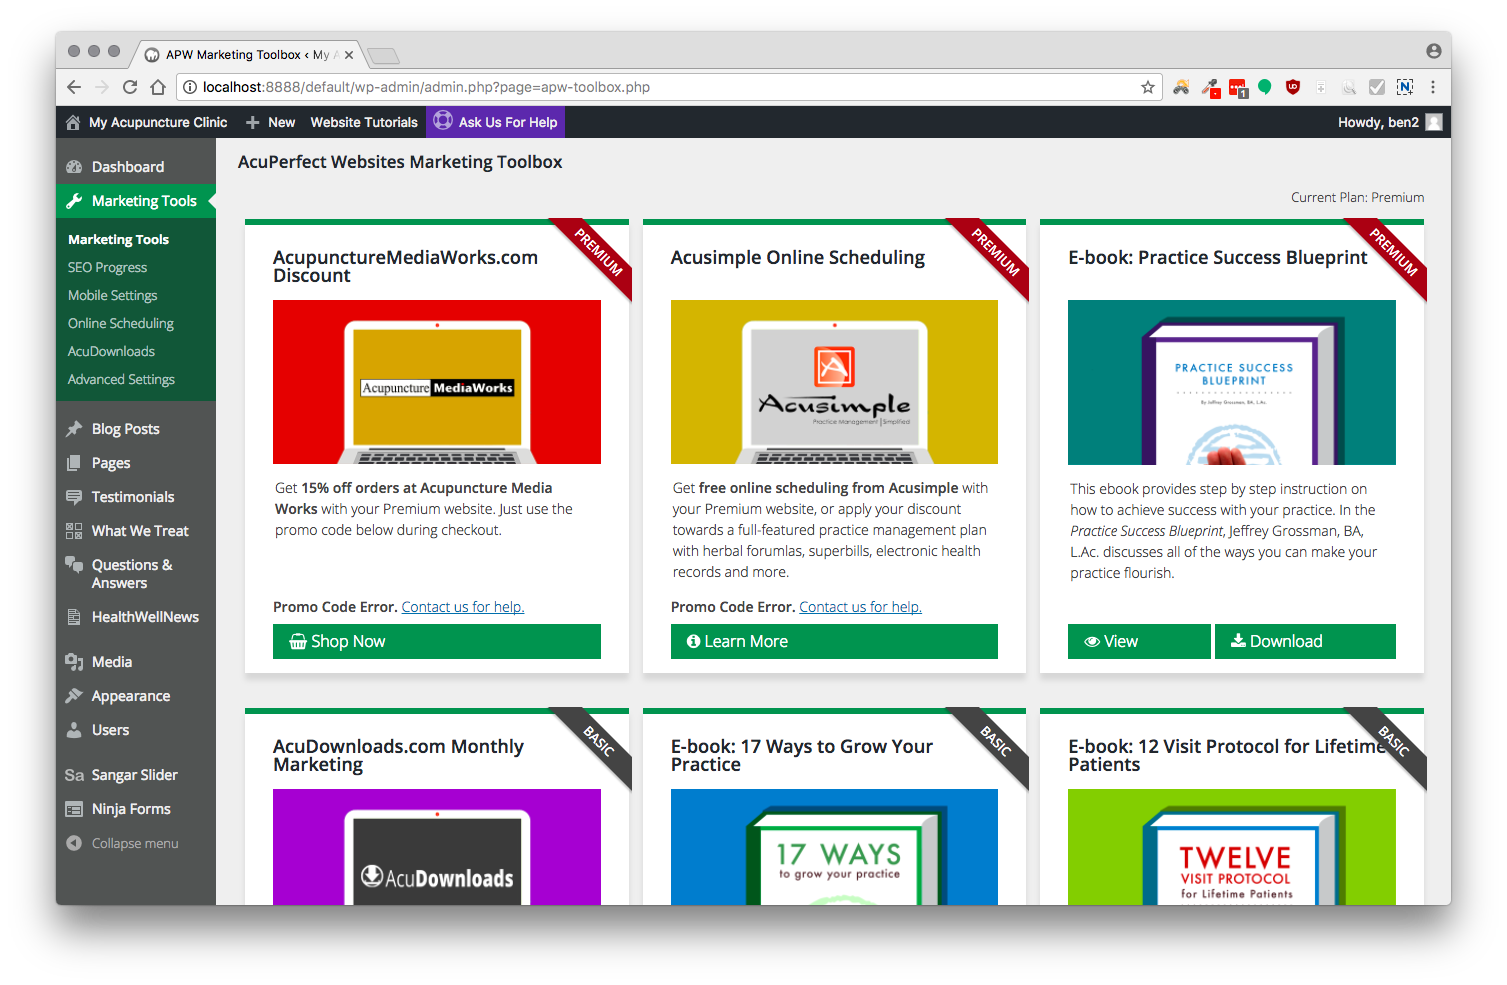 New dashboard and marketing toolbox acuperfect websites our new marketing toolbox gives you access to bonus content that makes an acuperfect website more than just a website access training e books seo writing baditri Gallery